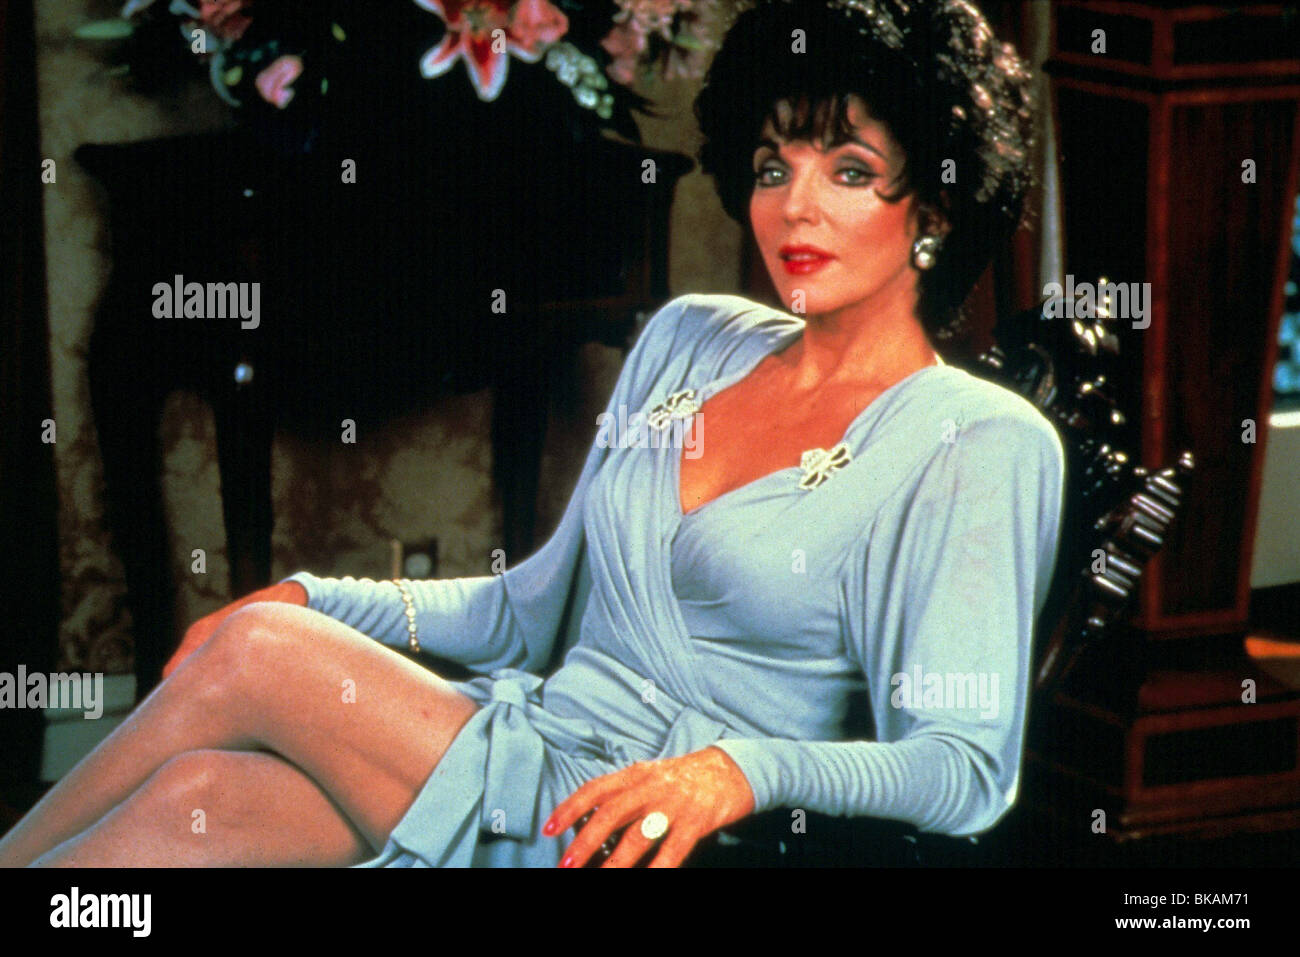 DYNASTY: THE REUNION (TVM) JOAN COLLINS DYTR 013 - Stock Image